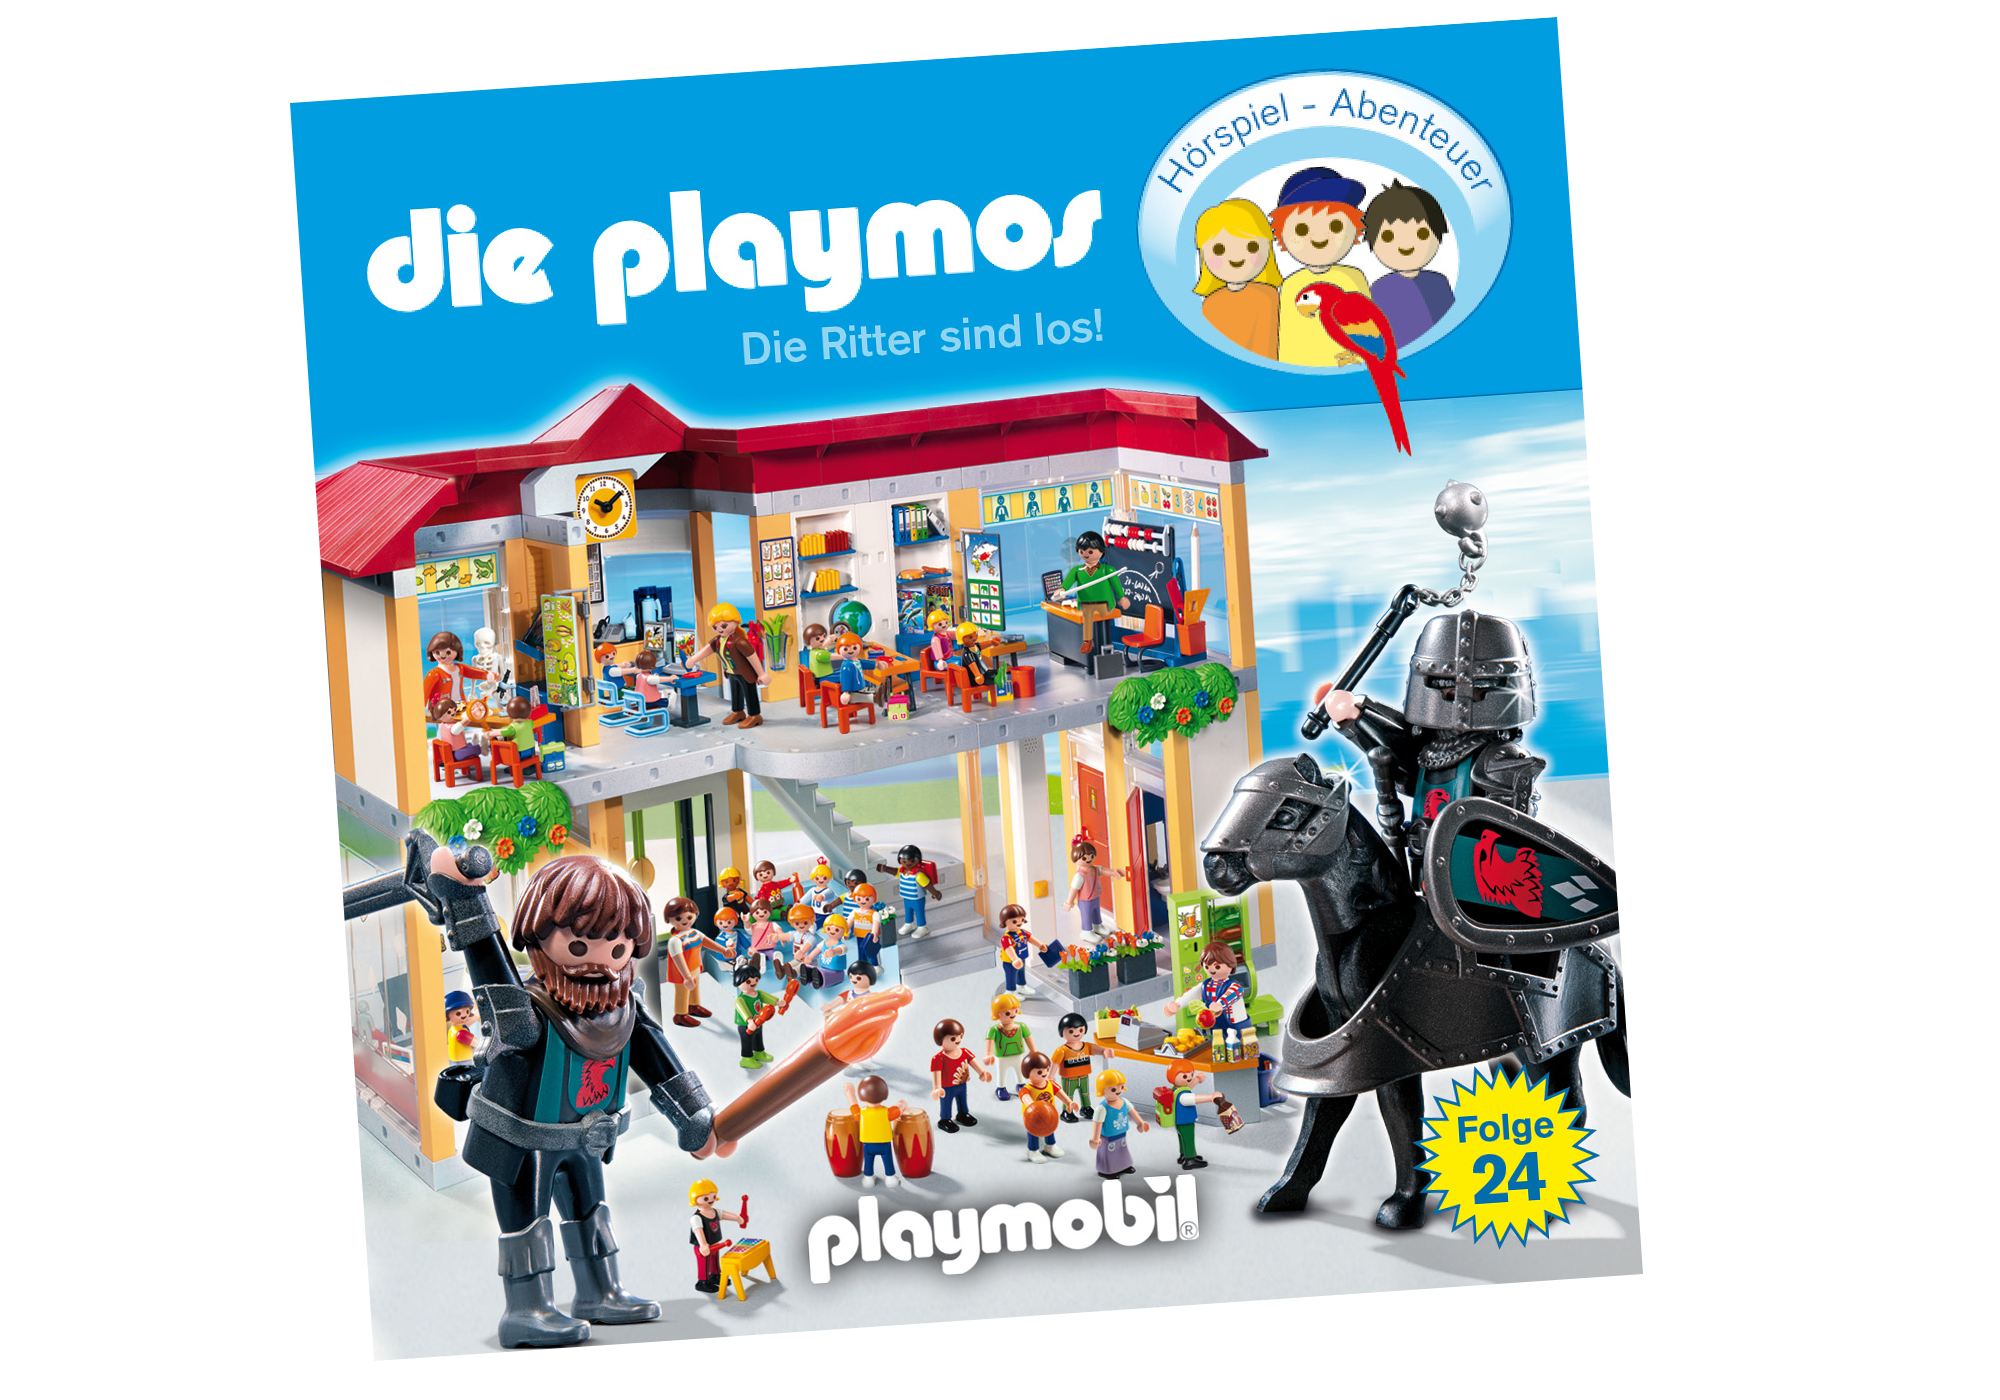 http://media.playmobil.com/i/playmobil/80330_product_detail